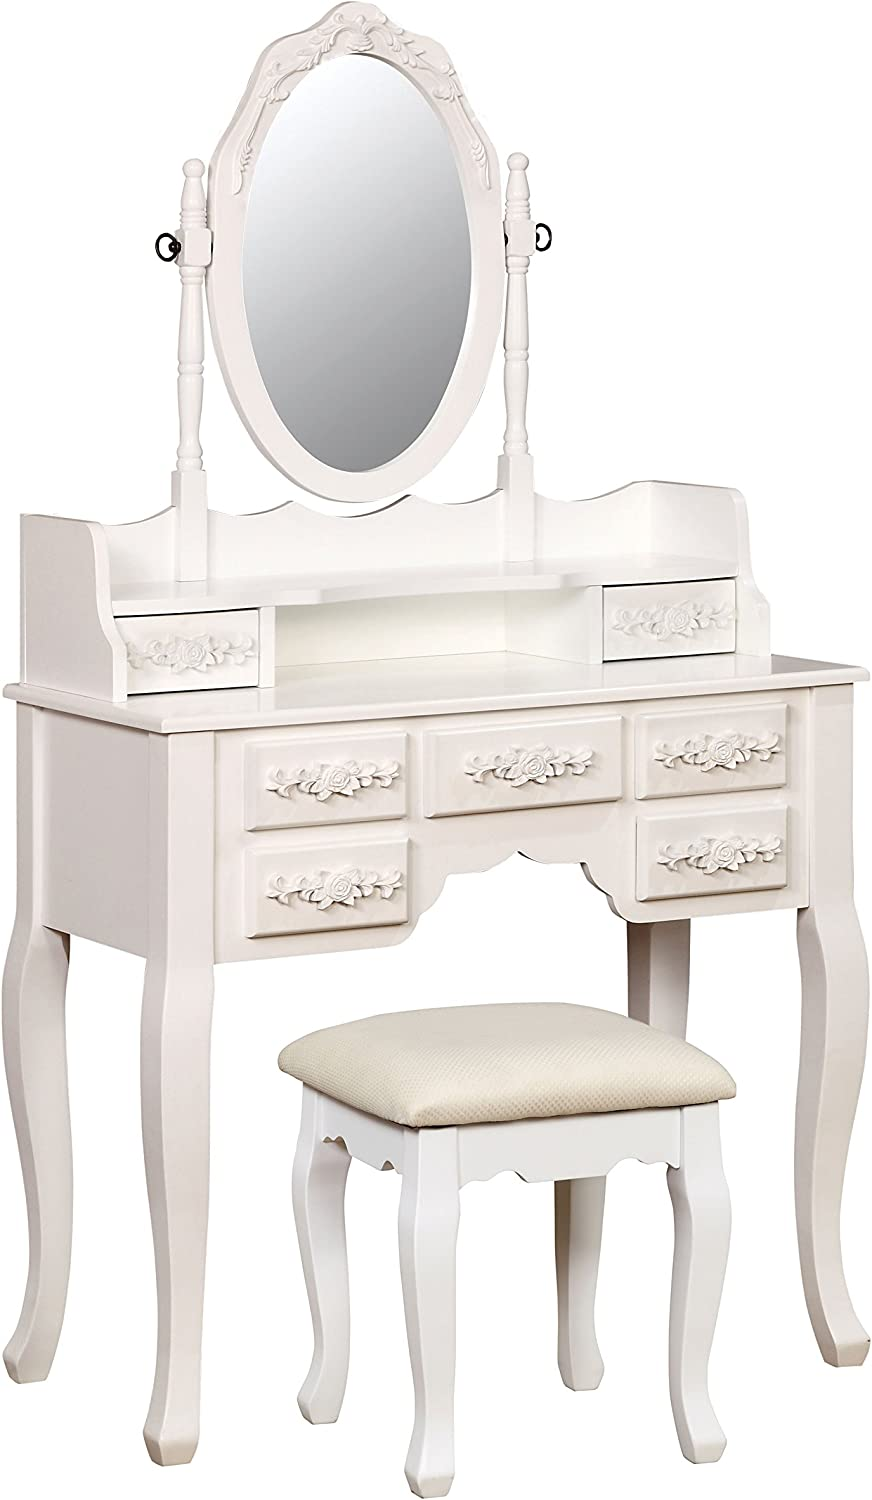 HOMES: Inside + Out Gala Transitional Vanity Table with Stool, White